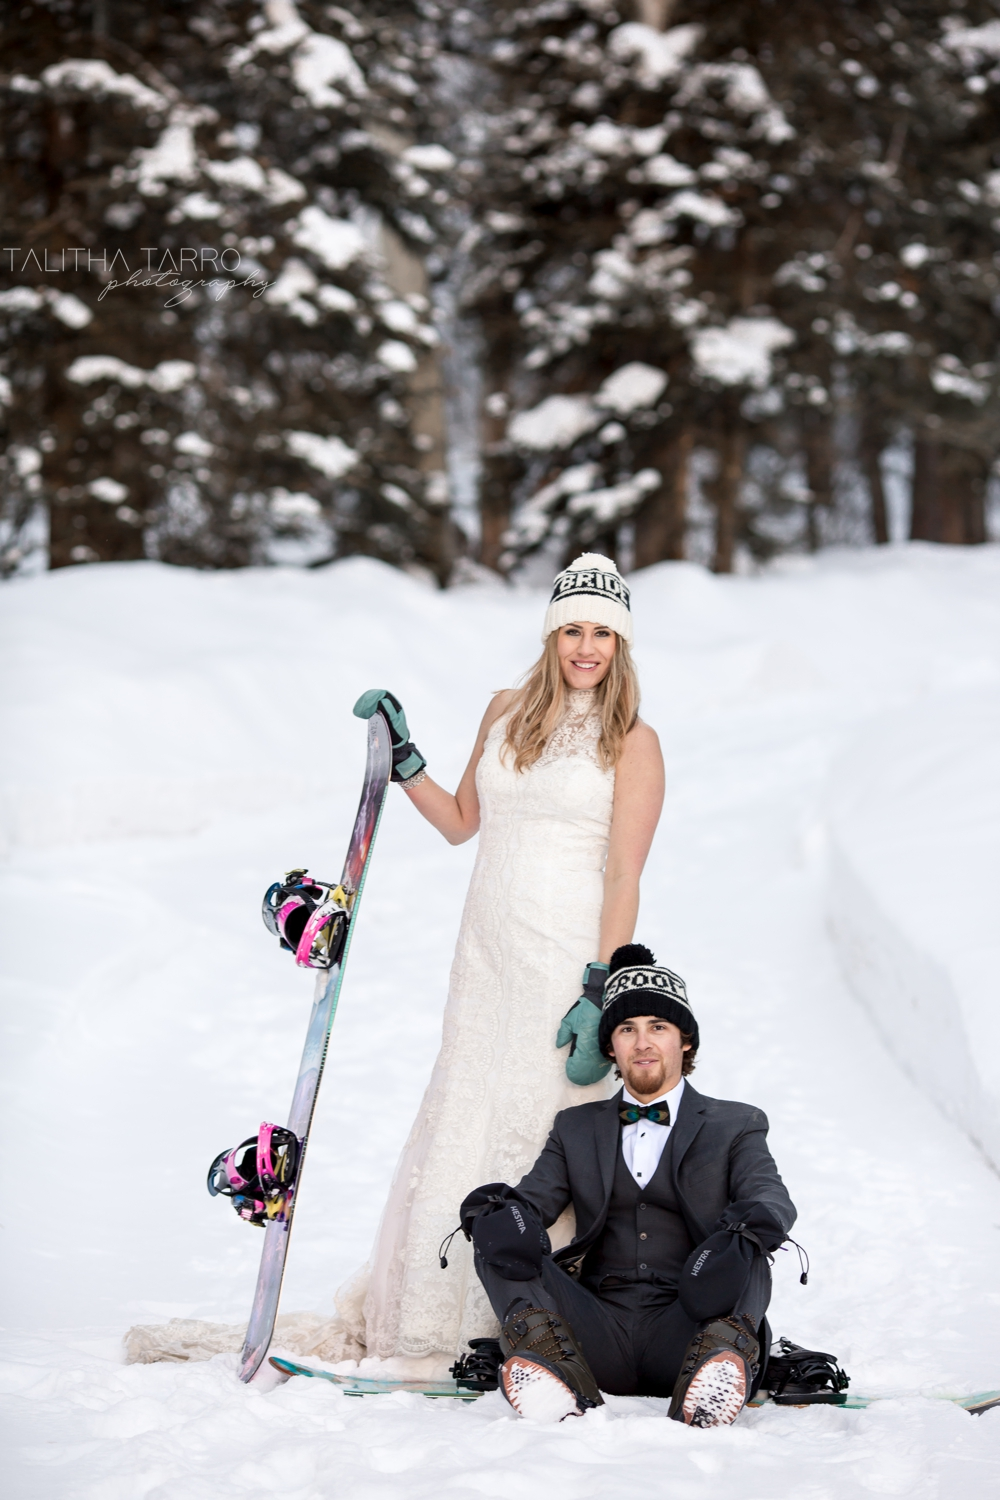 Snowboarders Wedding Day